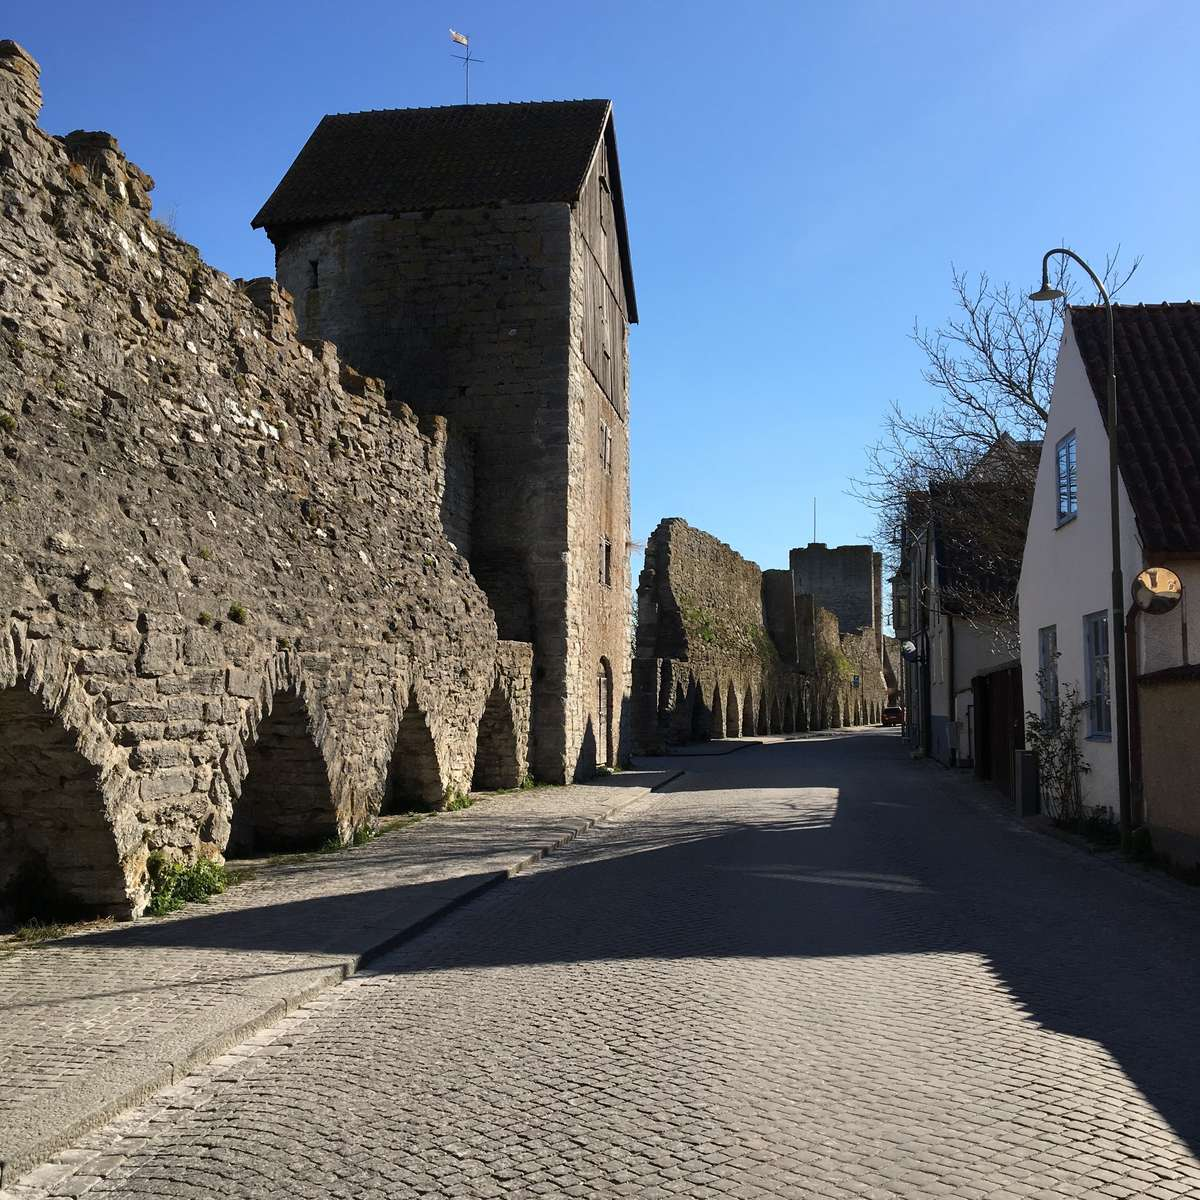 Much of the medieval walls still surround the town of Visby